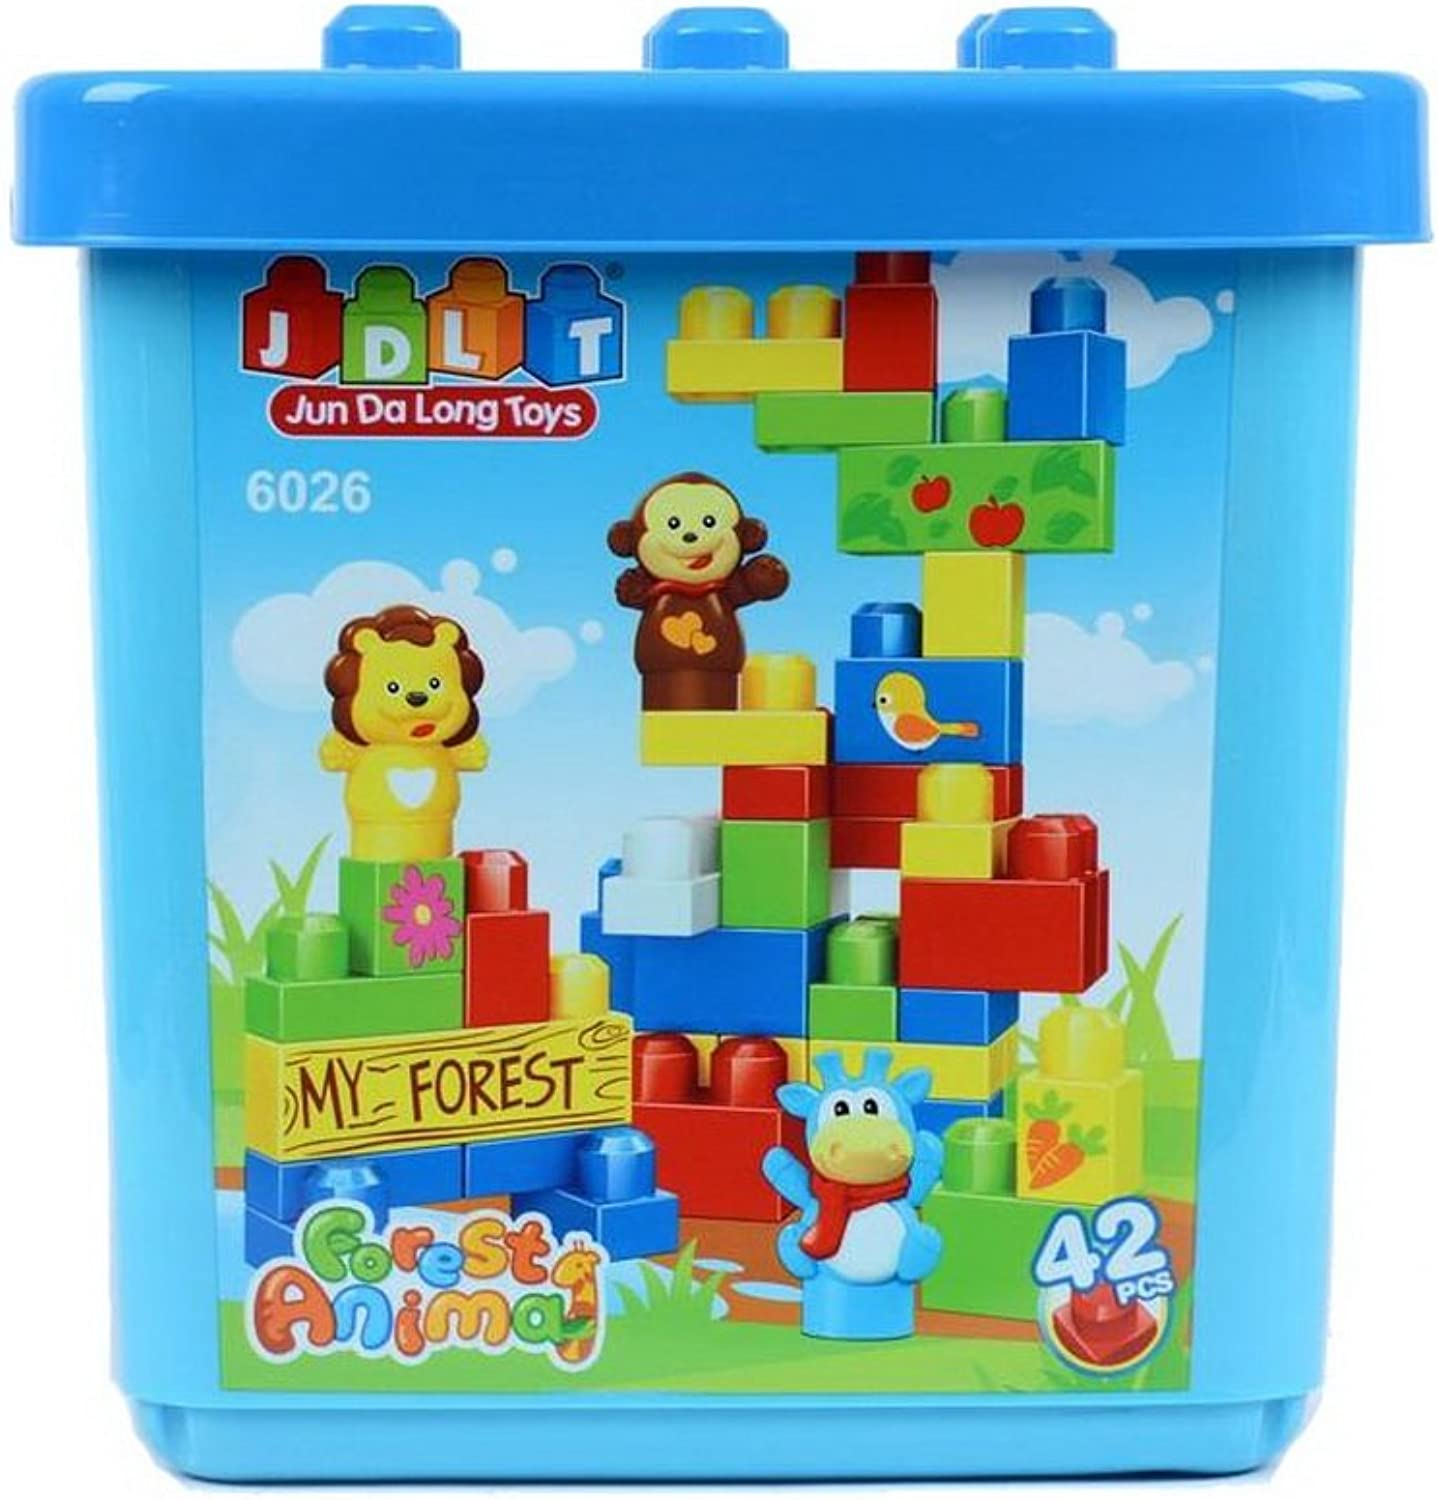 Infant Big Building Blocks with Holder, 42 PCS, Pre School Toys blueE